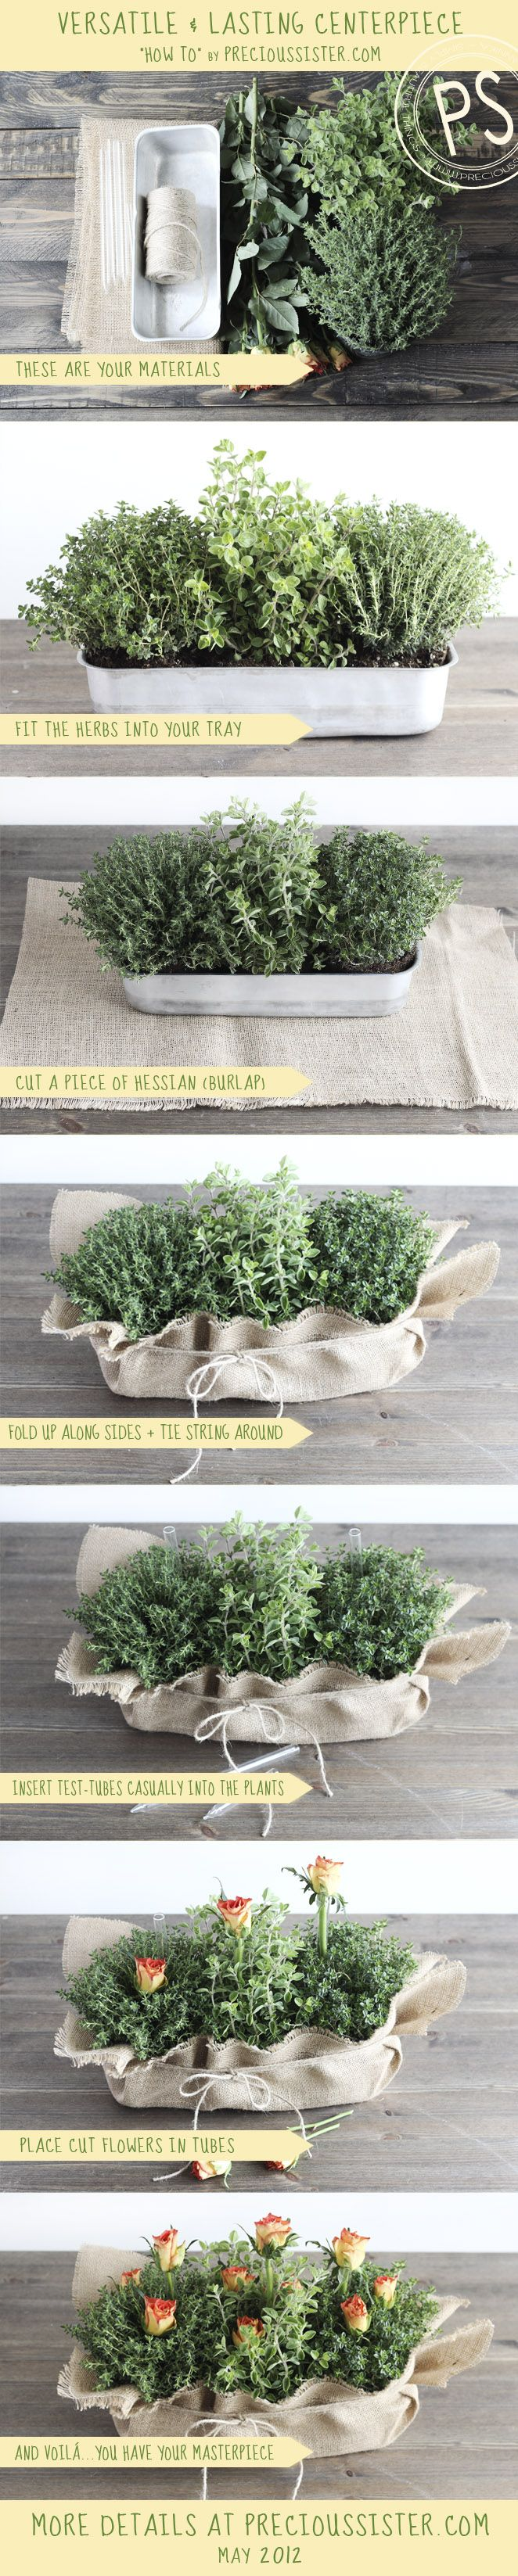 HOW TO; MAKE A VERSATILE AND LASTING LIVING CENTERPIECE; Using a few materials like burlap, jute some cut flowers and 3 potted herbs of your choice. Flowers | Precious Sister